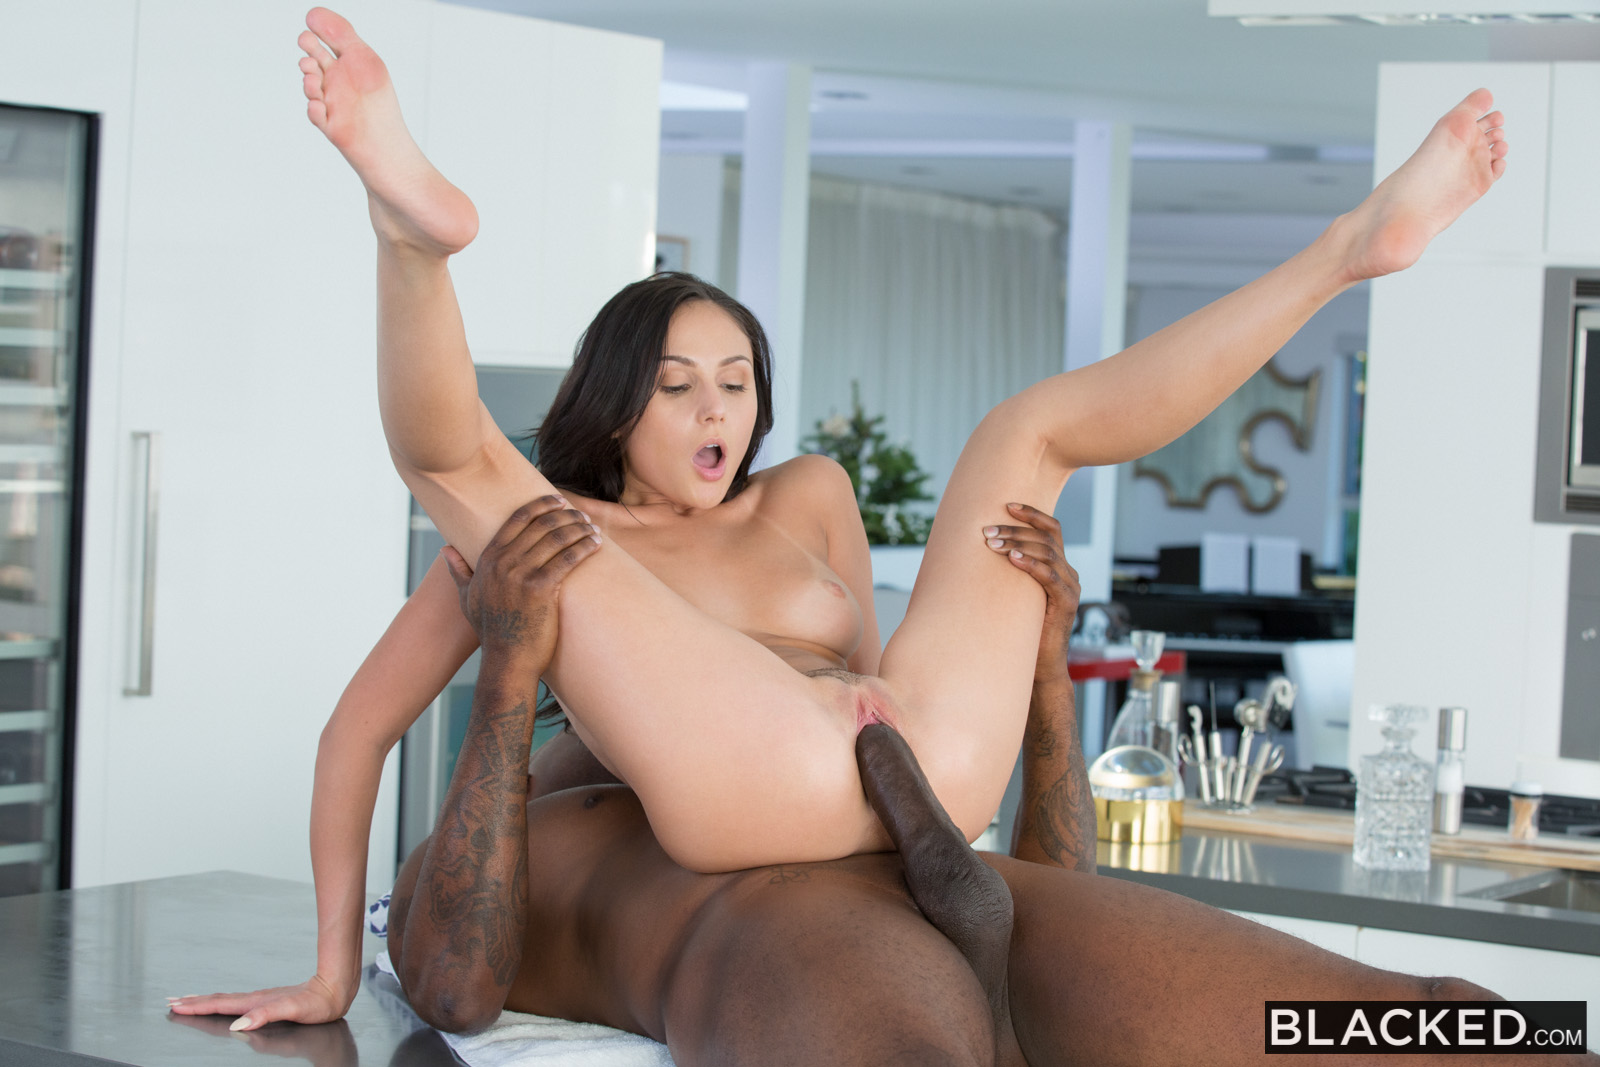 Milf maid porn and hot sexy moms